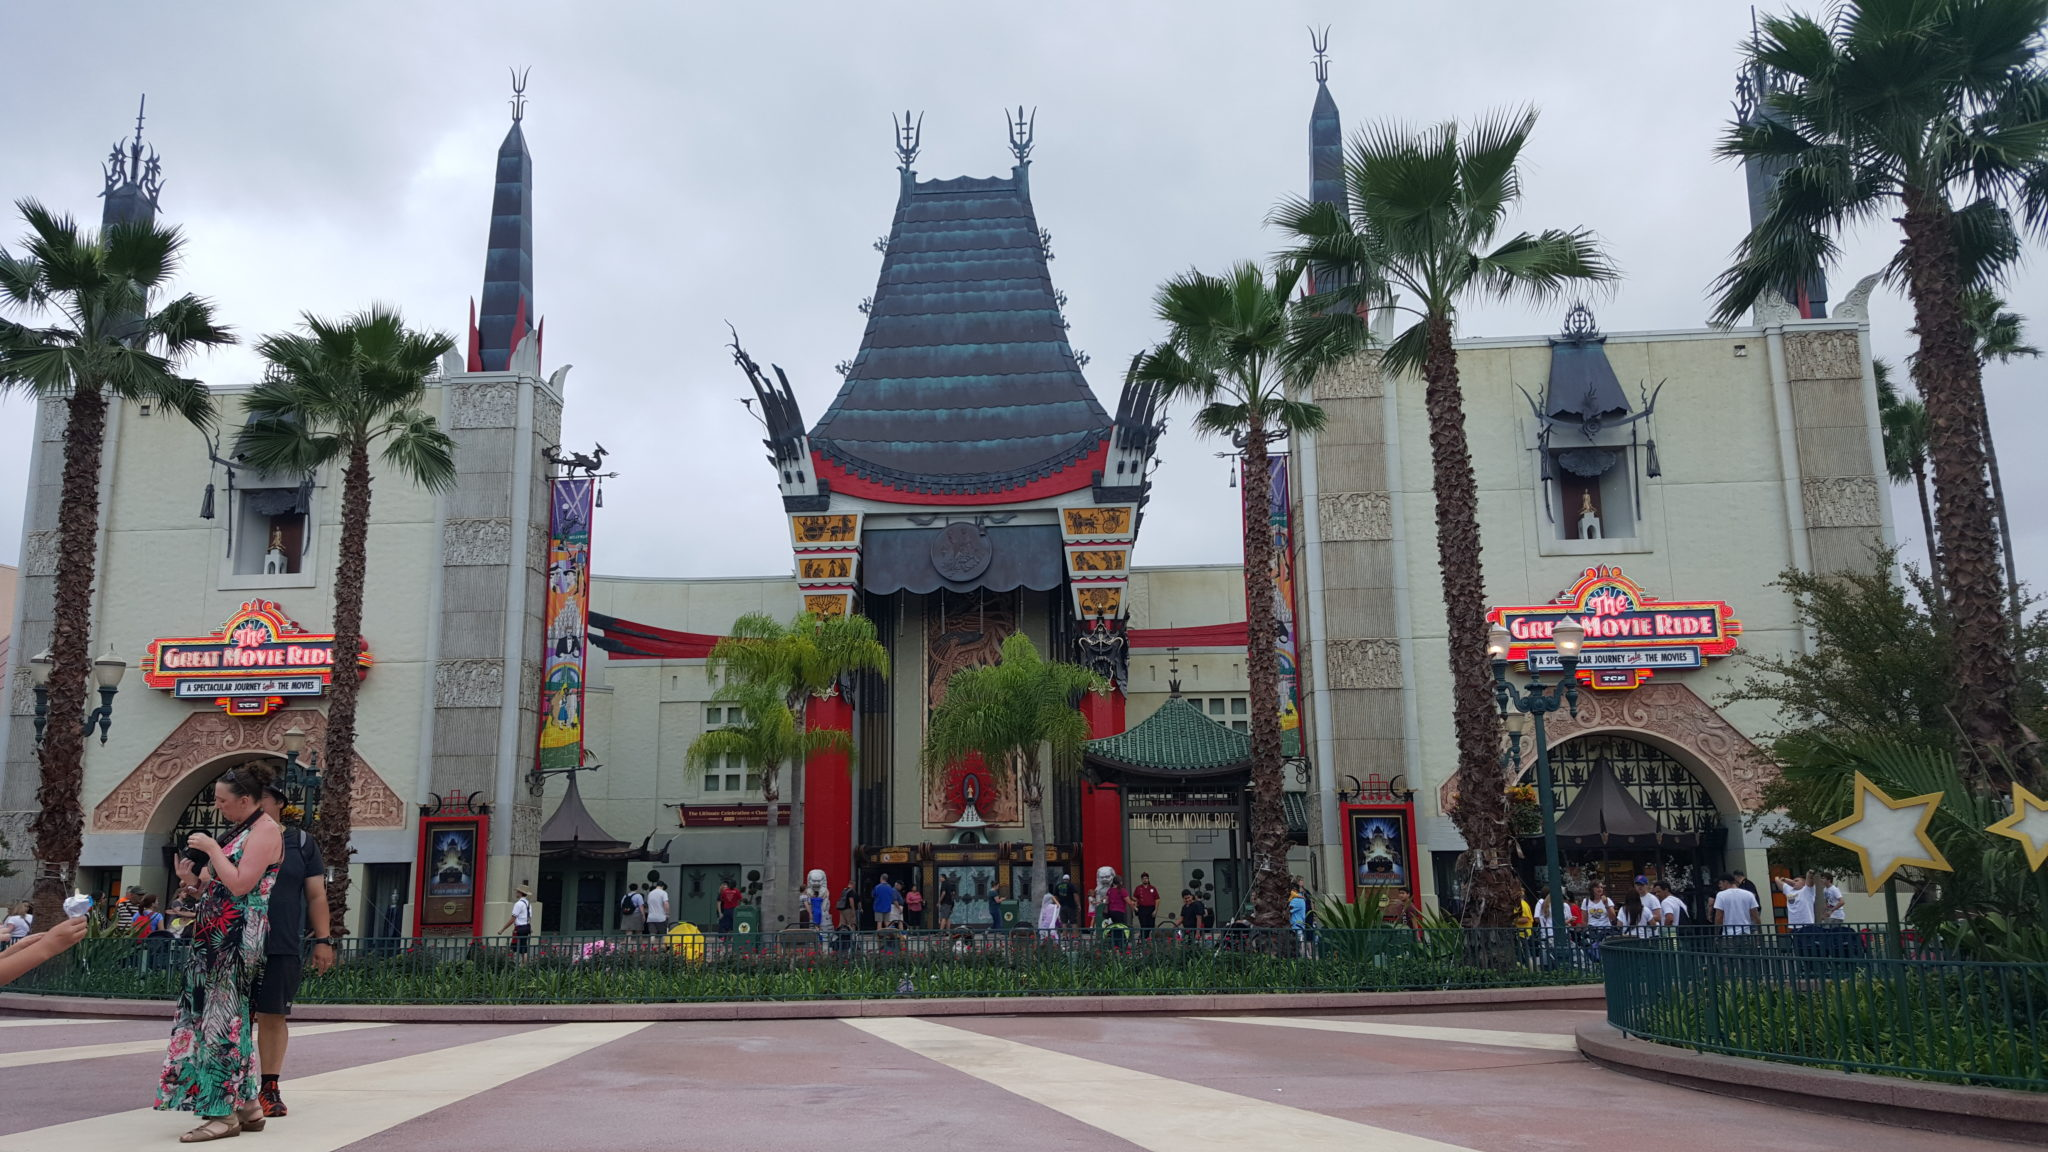 What is left at Hollywood Studios?